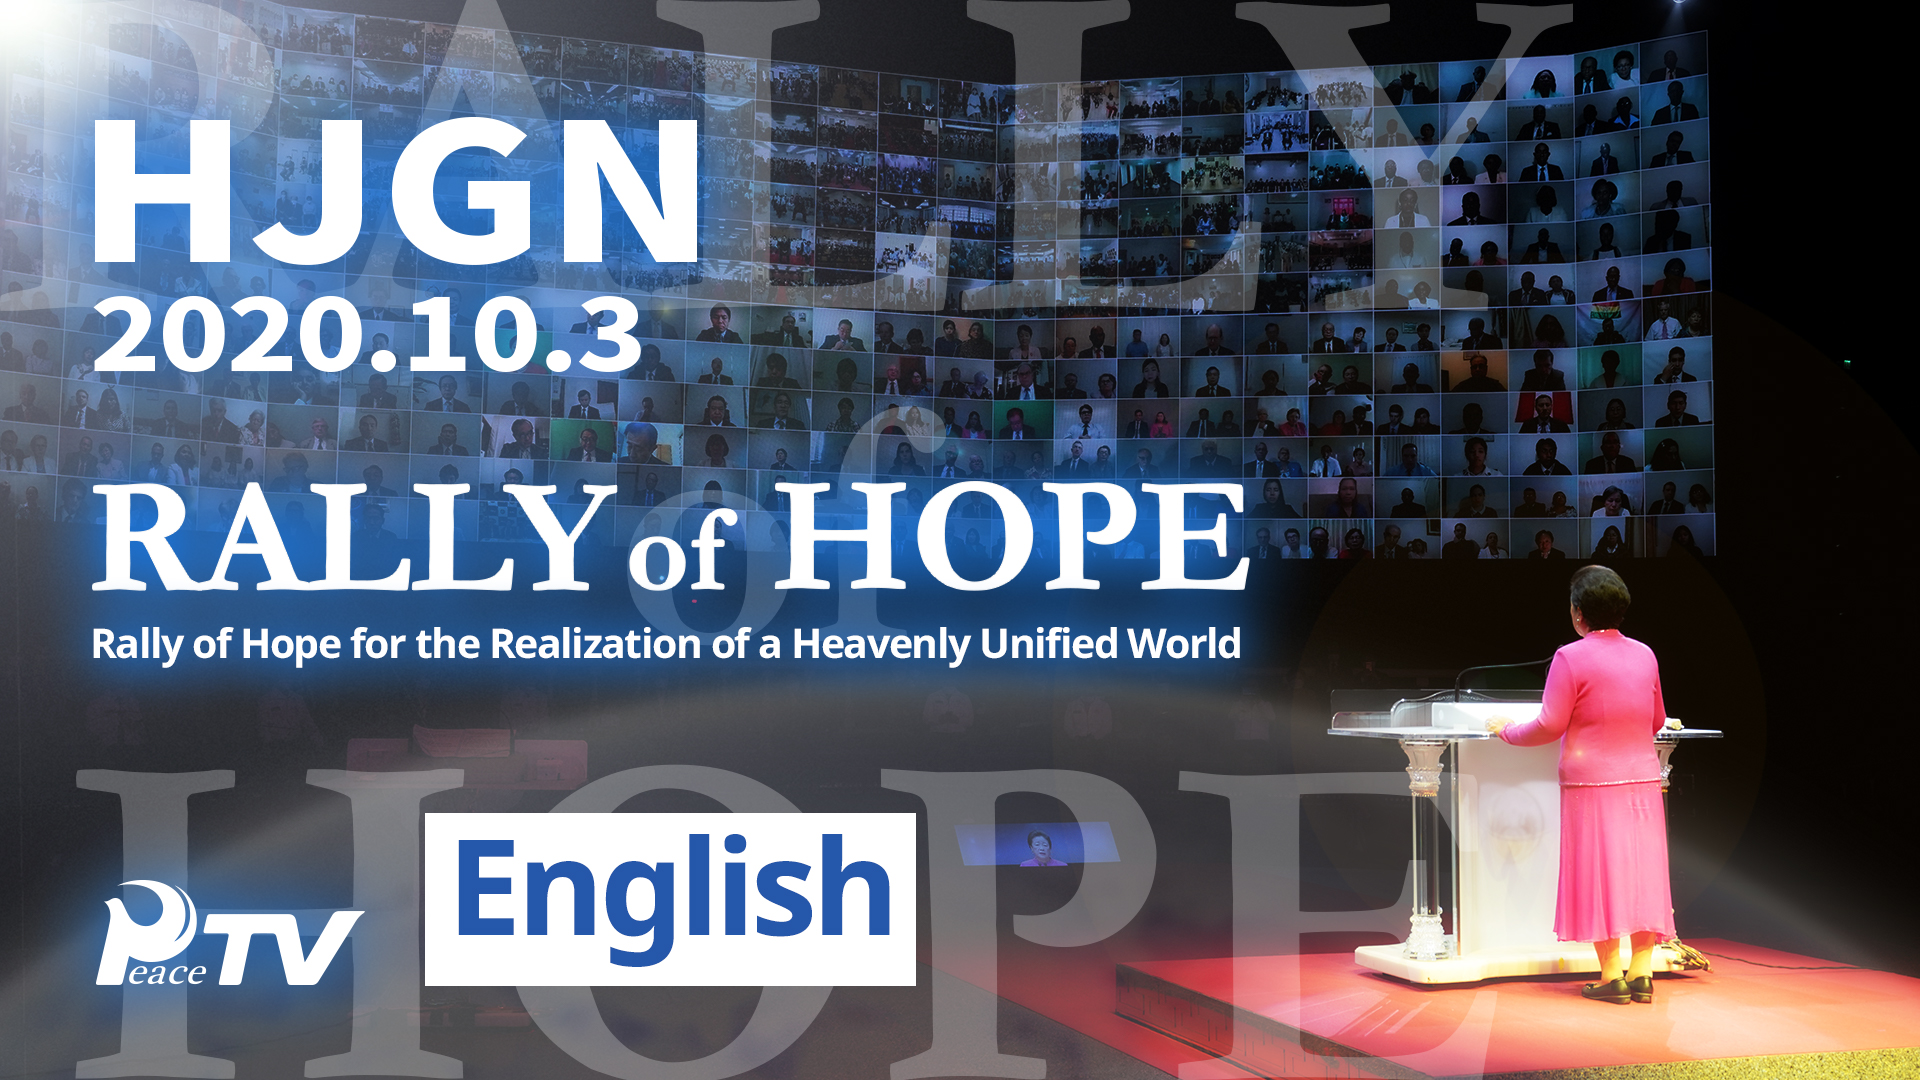 The 2nd One Million Rally of Hope for the Realization of a Heavenly Unified World